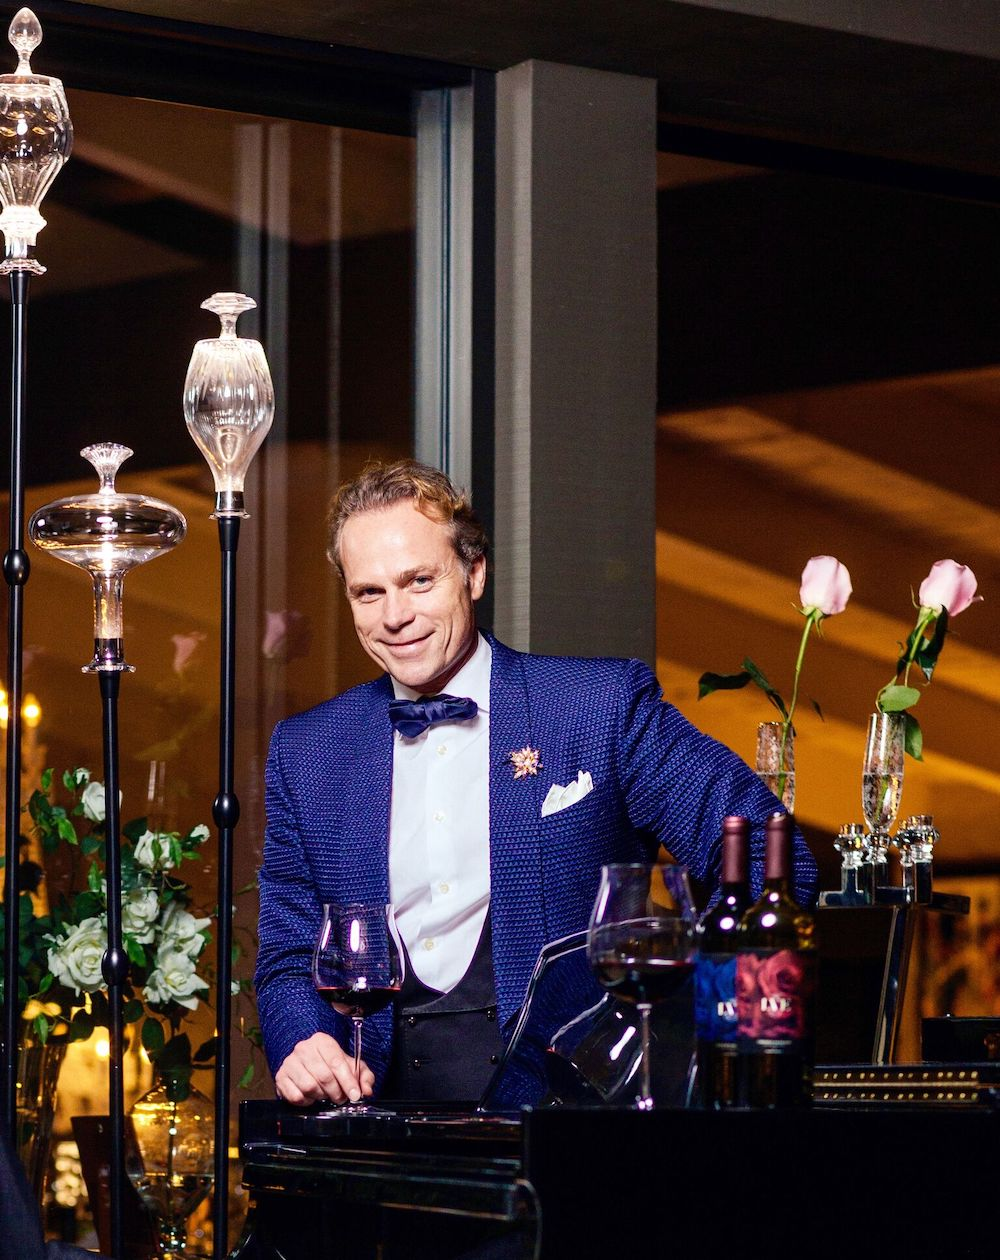 Inside The Luxury World of Jean-Charles Boisset: Unique Wine Projects jean-charles boisset Inside The Luxury World of Jean-Charles Boisset: Unique Wine Projects unspecified 11 2